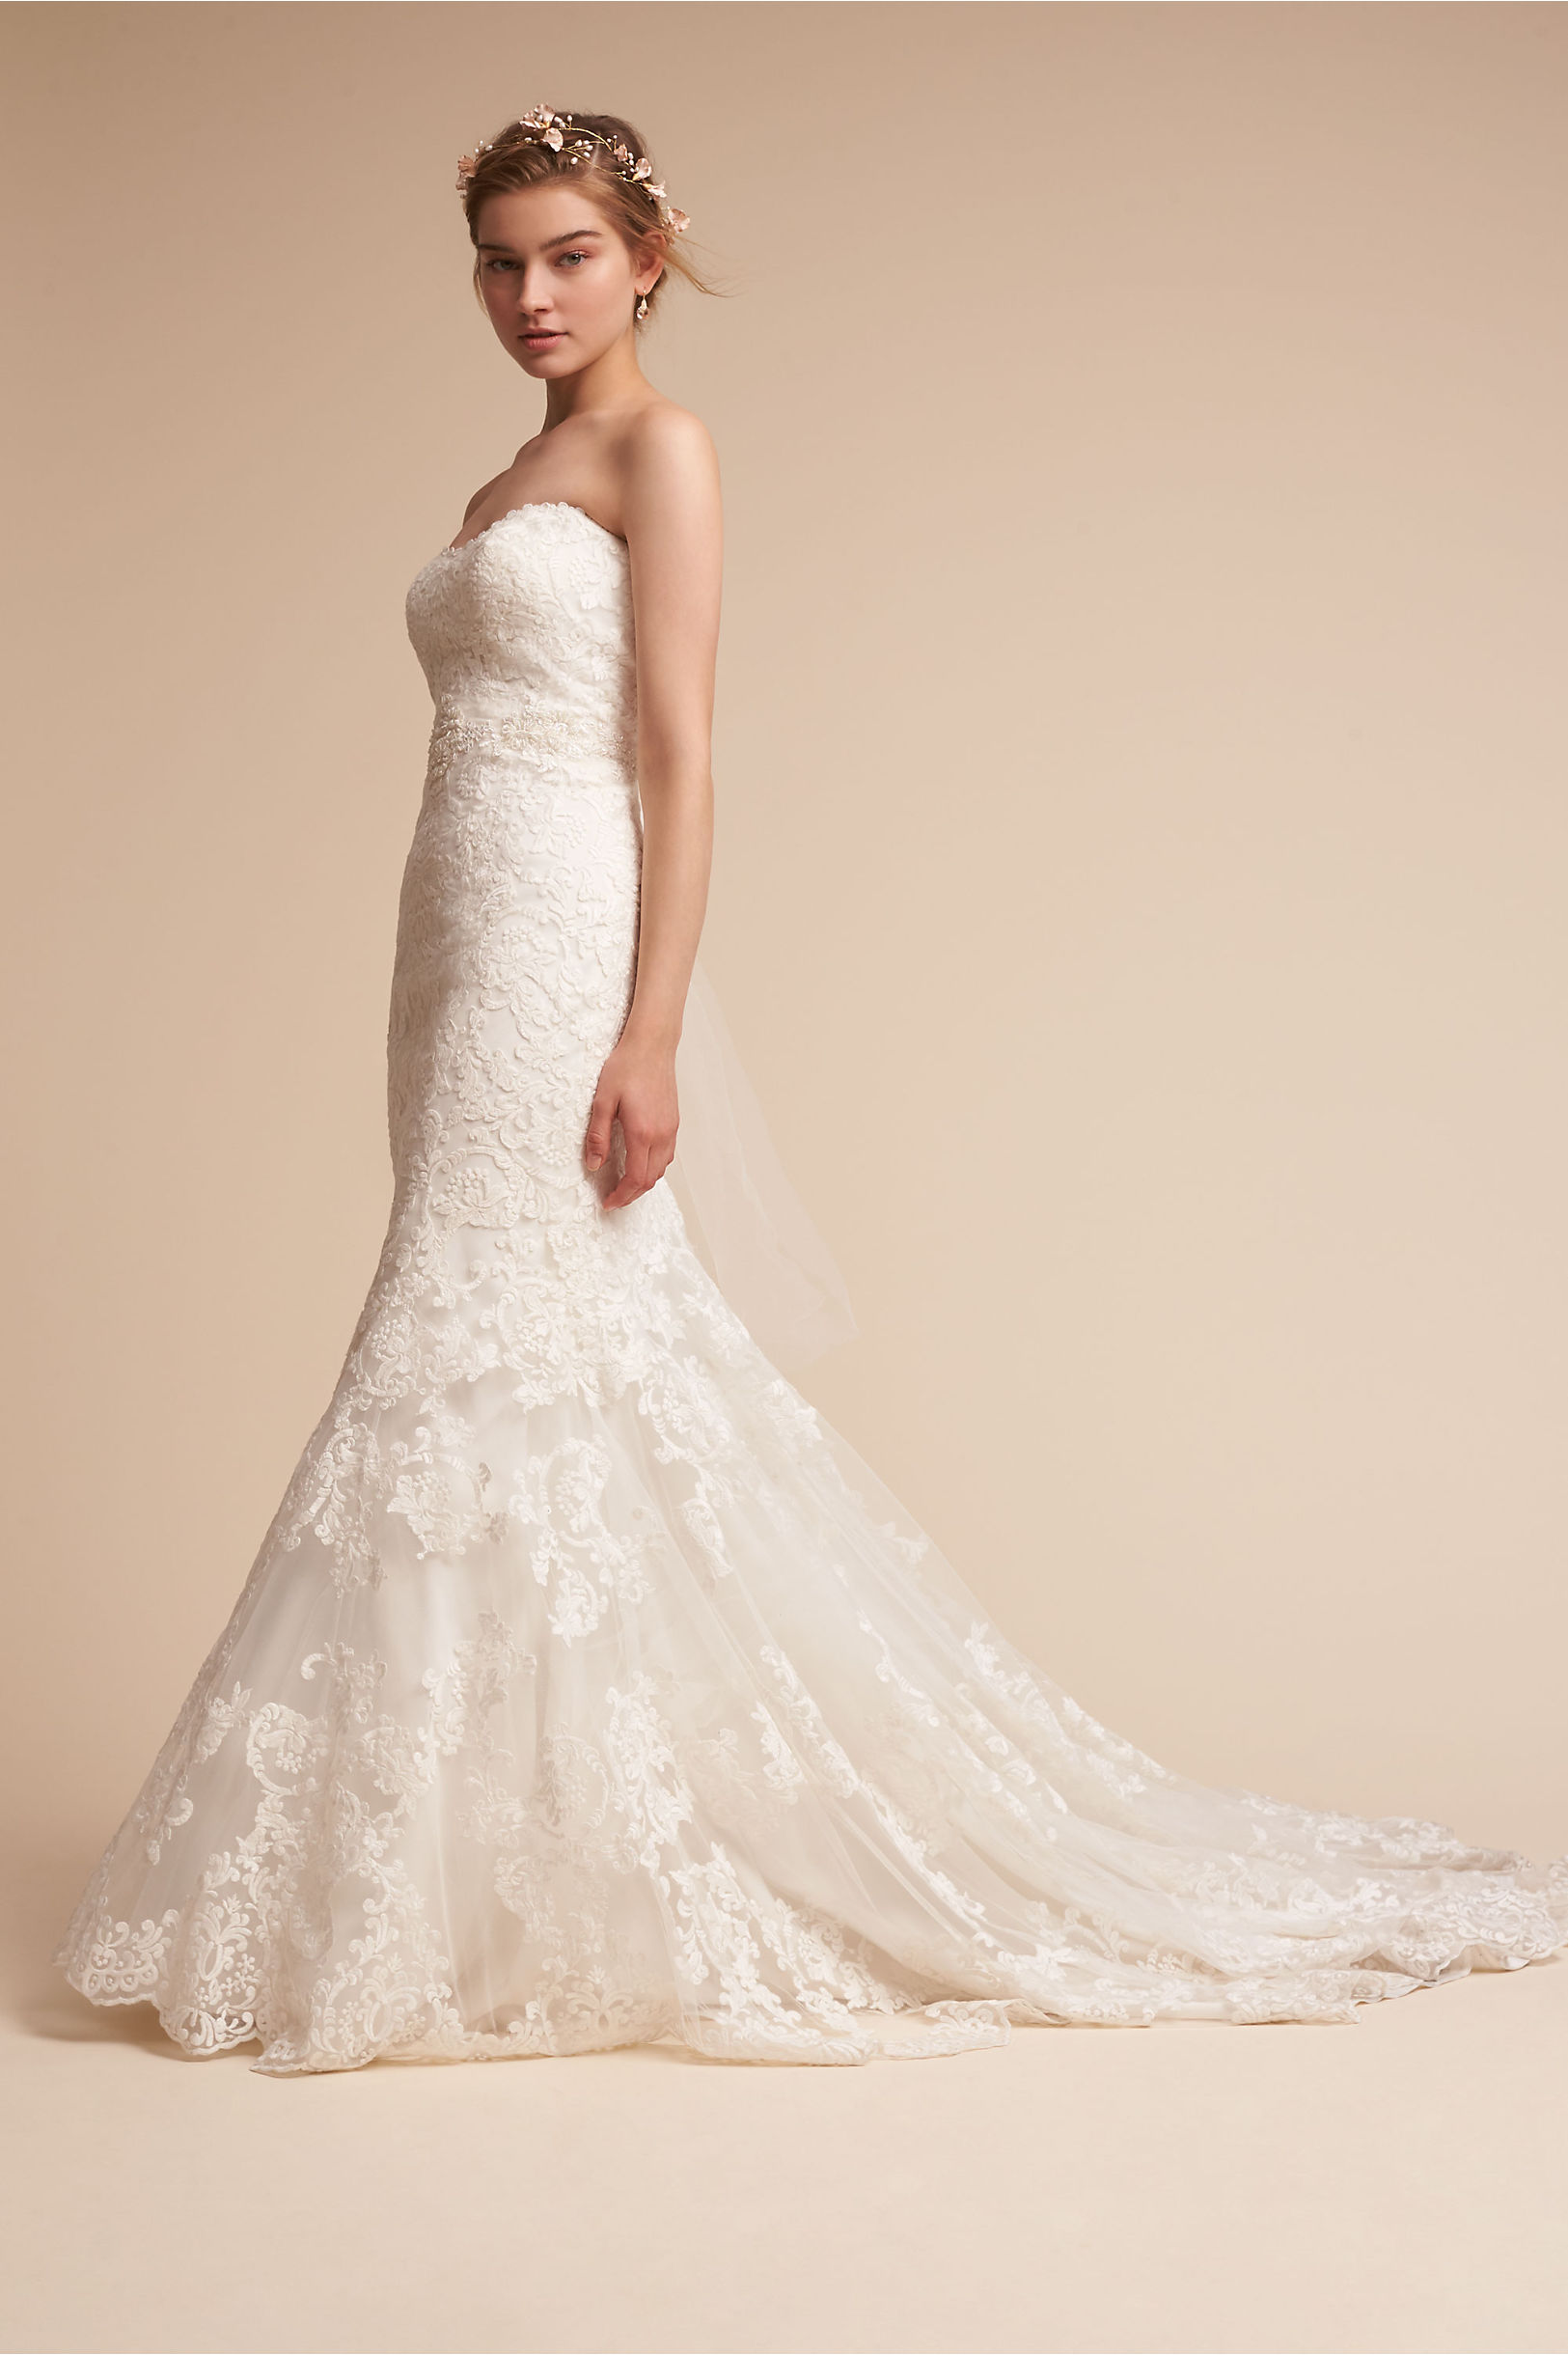 Marjorie Gown - BHLDN really does a great job. This pretty dress with floral lace applique is fitted through the hips and has a plunging back, with a stunning train.Price: $1600